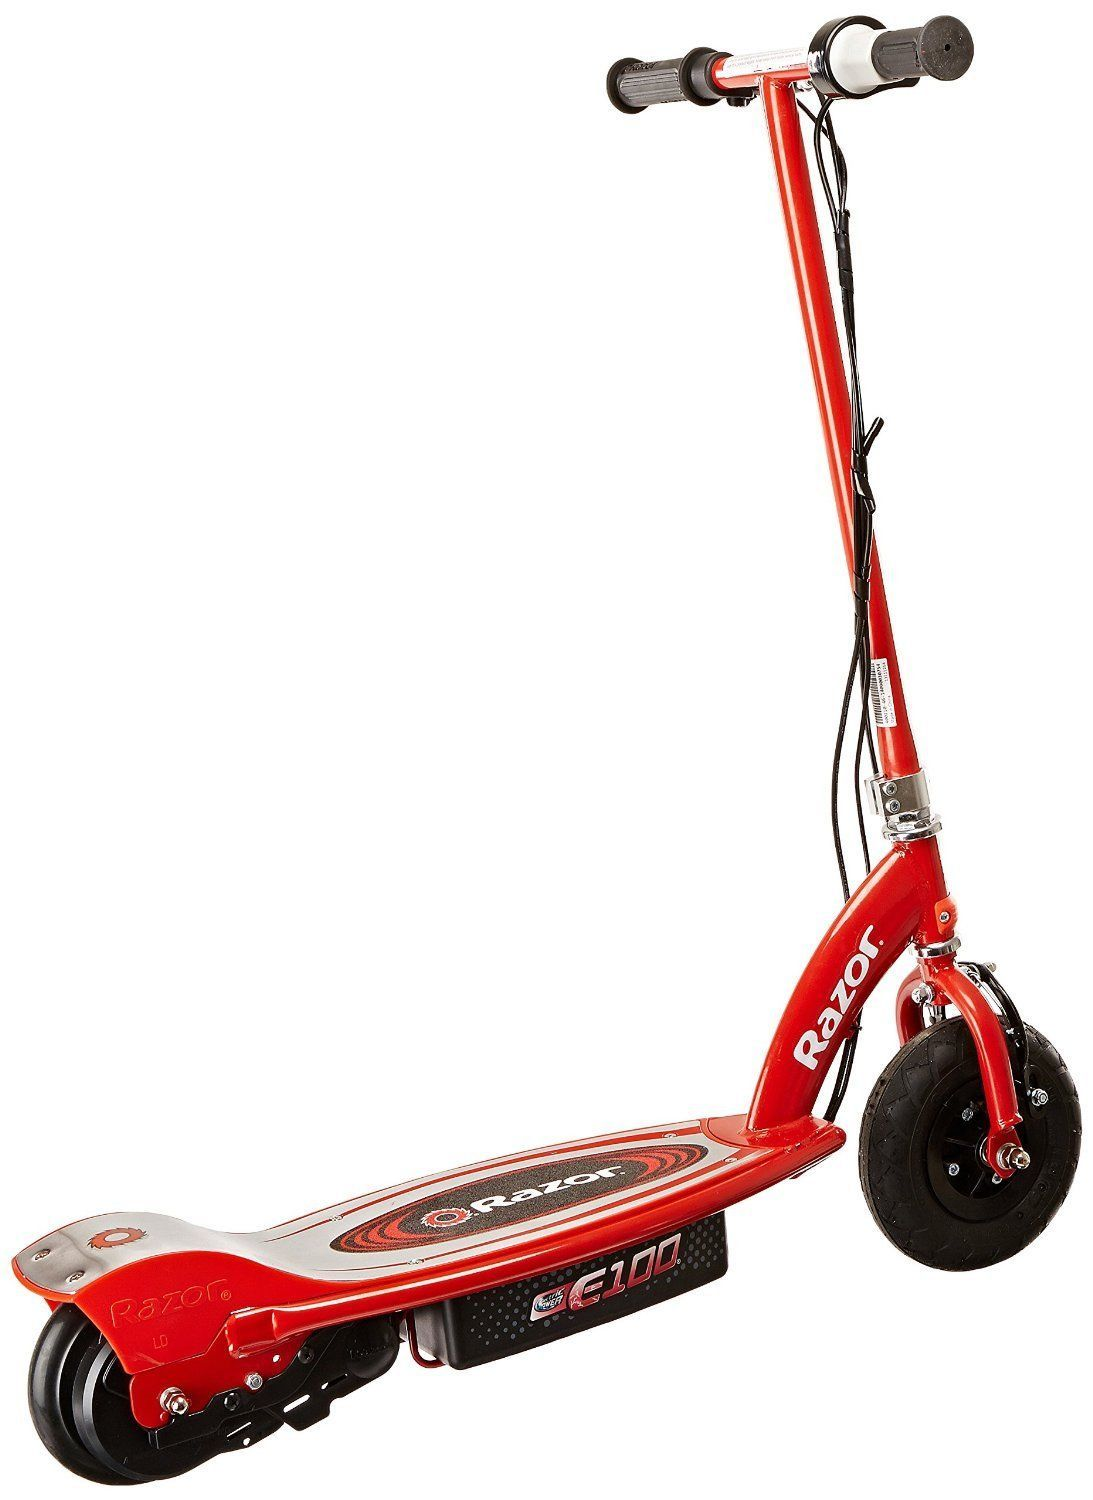 Razor e100 motorized 24v electric scooter and 30 similar items for Motorized scooters for teenager